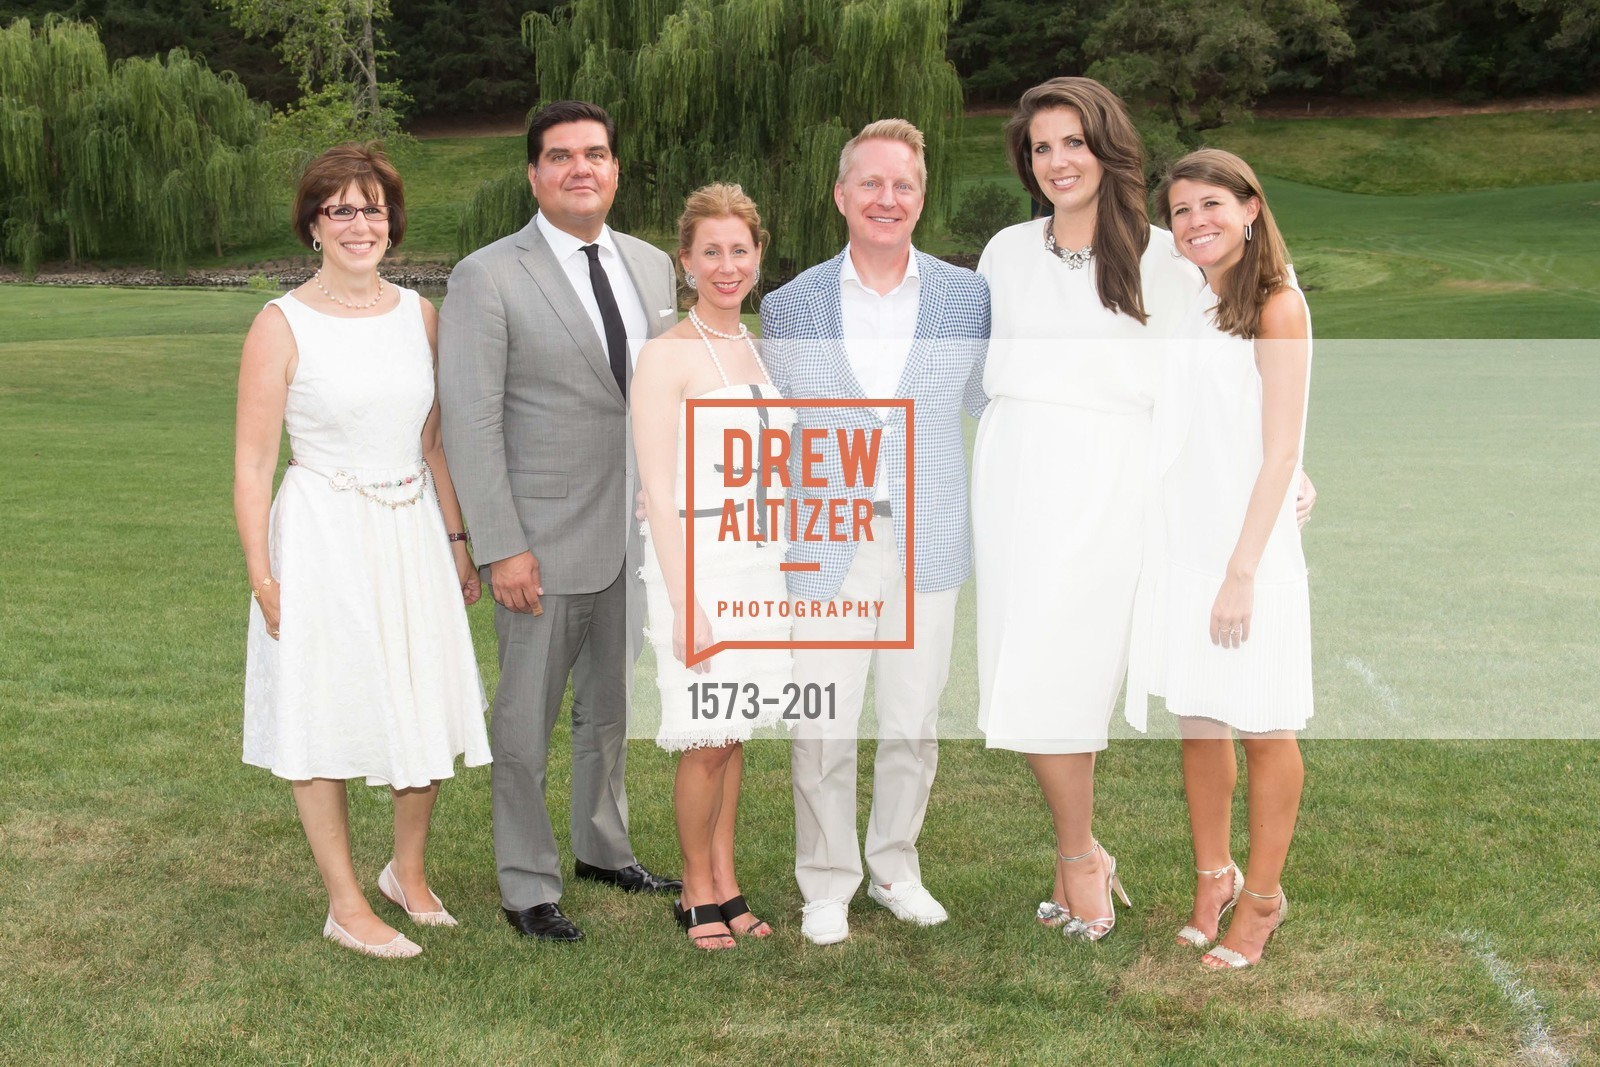 Terri Mino, Eric Rodriguez, Noelle von Tesmar, Jamie Broadhurst, Meghan Murray, Maggie Koenig, Festival del Sole Annual Gala at Meadowood Napa Valley, Meadowood Napa Valley. 900 Meadowood Ln, July 19th, 2015,Drew Altizer, Drew Altizer Photography, full-service agency, private events, San Francisco photographer, photographer california